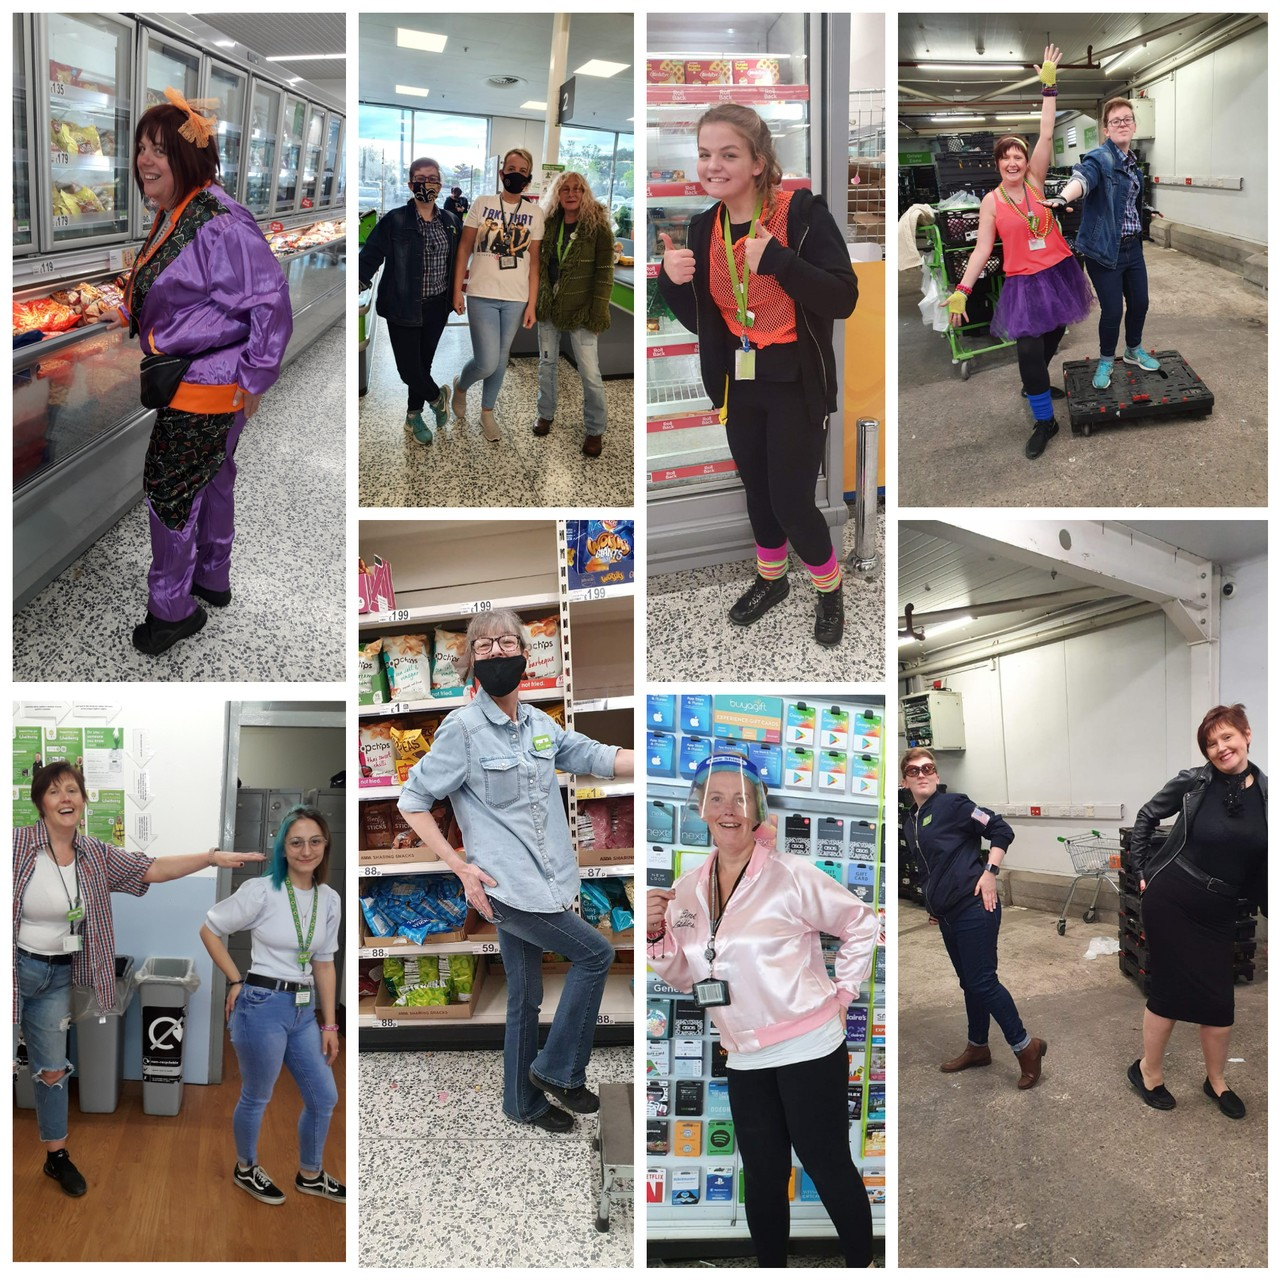 We celebrate 'Asda Price' by dressing up in 70s, 80s and 90's gear   Asda Ashton